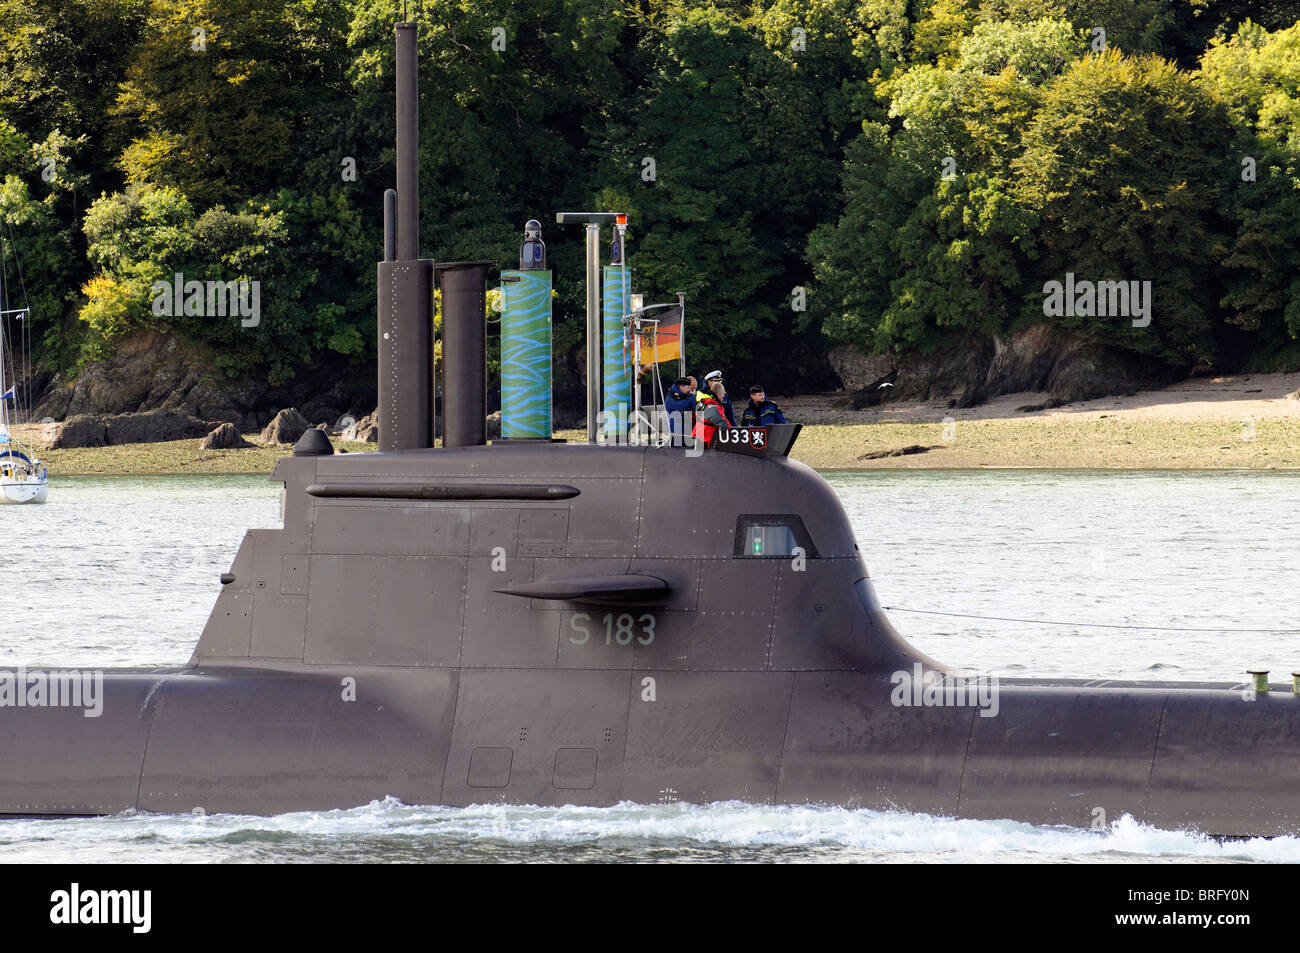 German Navy U33 submarine with officers on the conning tower of the vessel seen underway on the River Tamar Devon - Stock Image